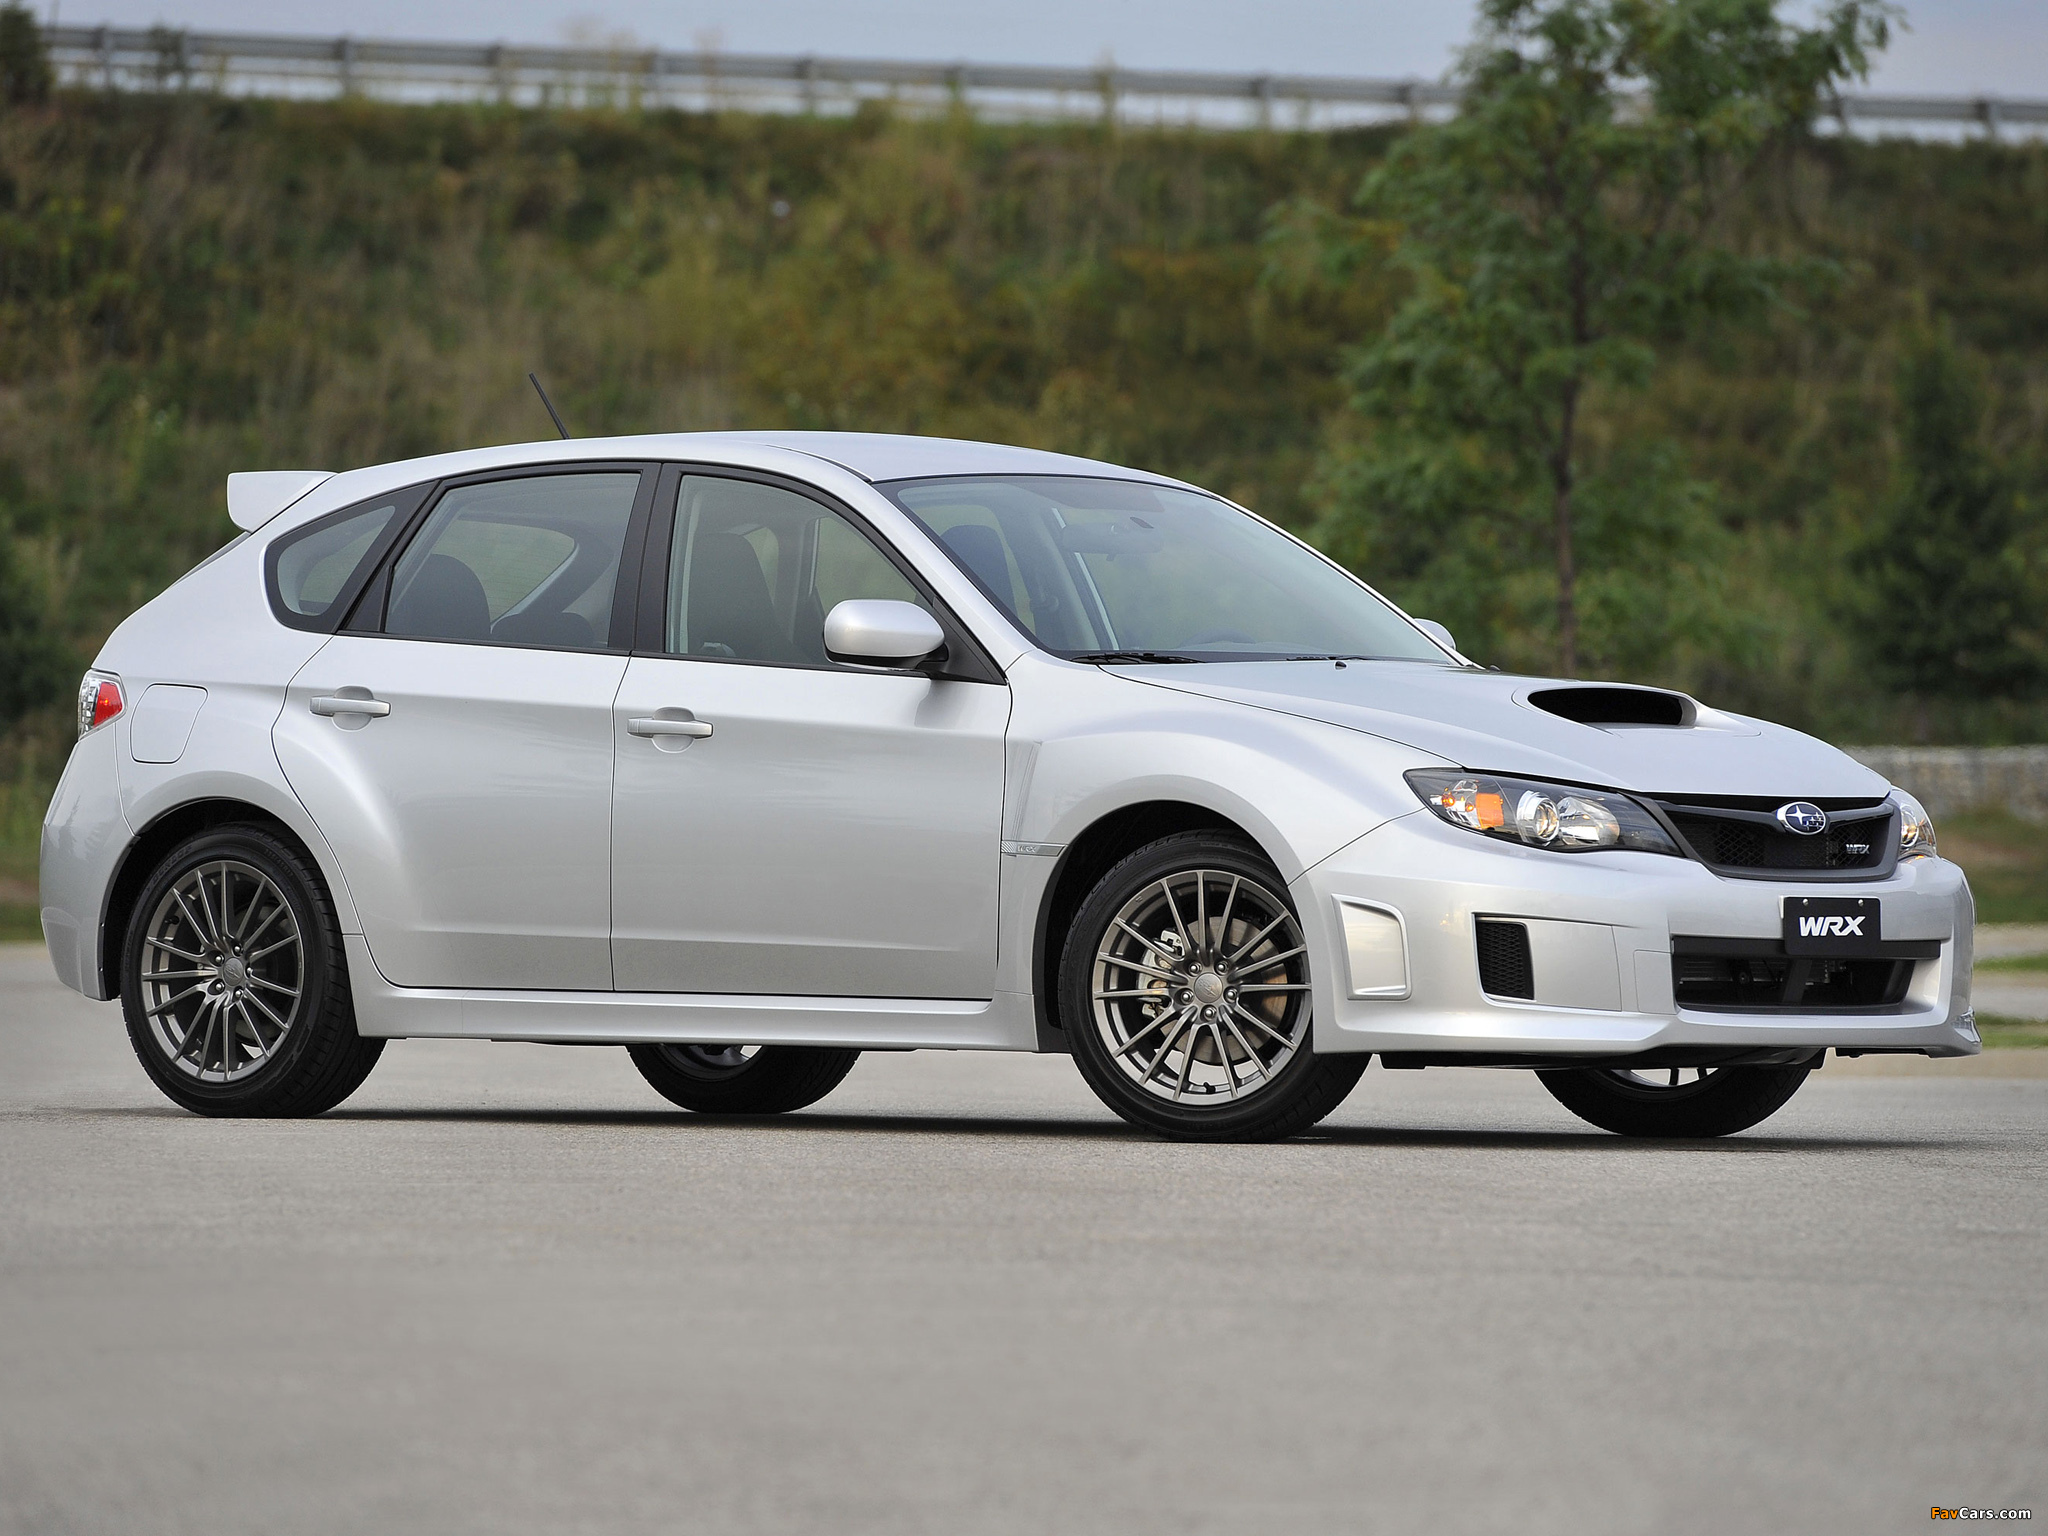 images of subaru impreza wrx hatchback us spec 2010. Black Bedroom Furniture Sets. Home Design Ideas